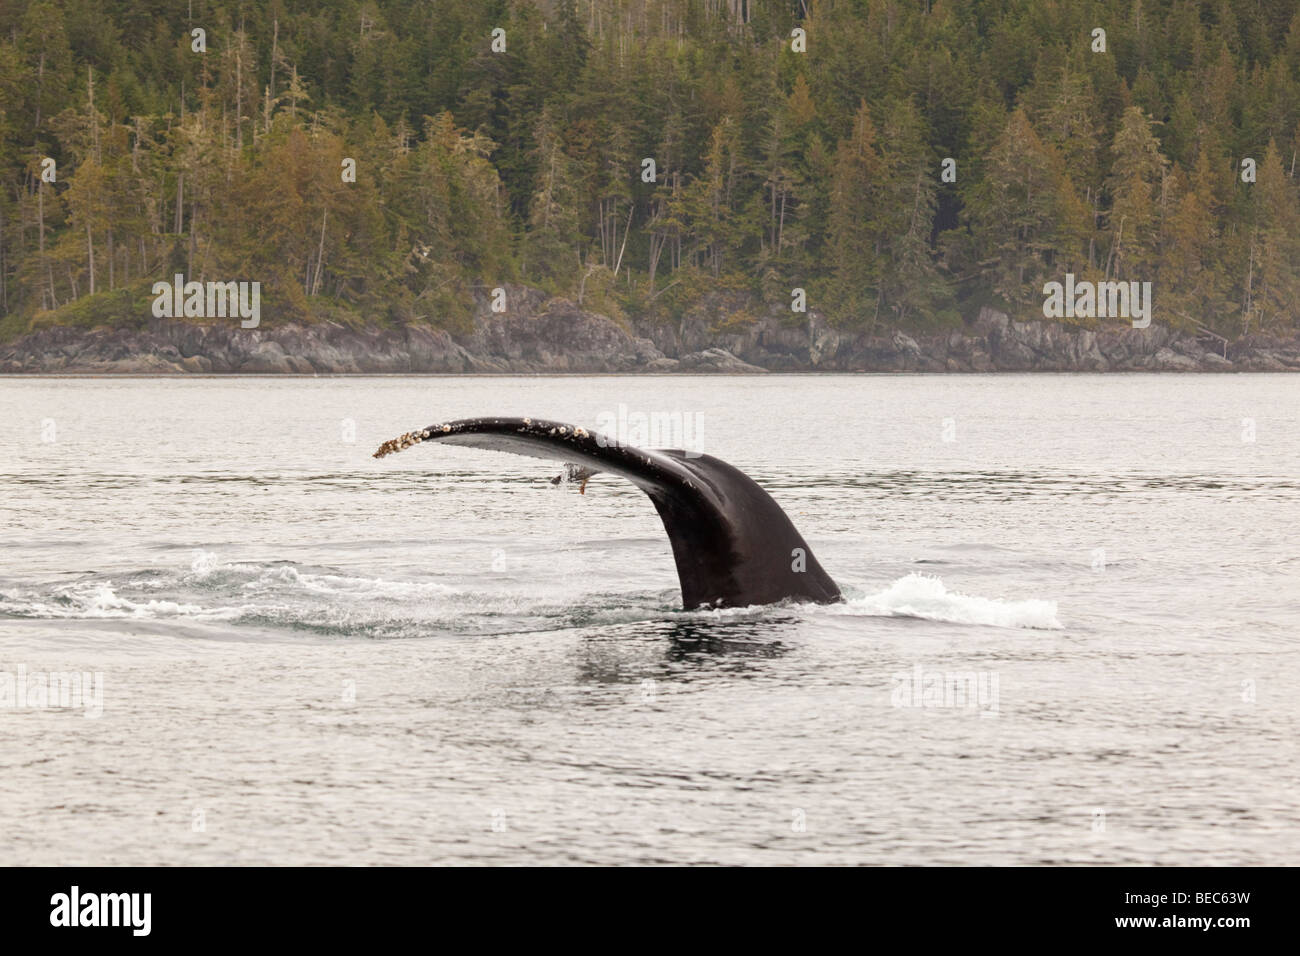 Tail fluke of a humpback whale in the Johnston Strait in pacific northwest Canada. - Stock Image